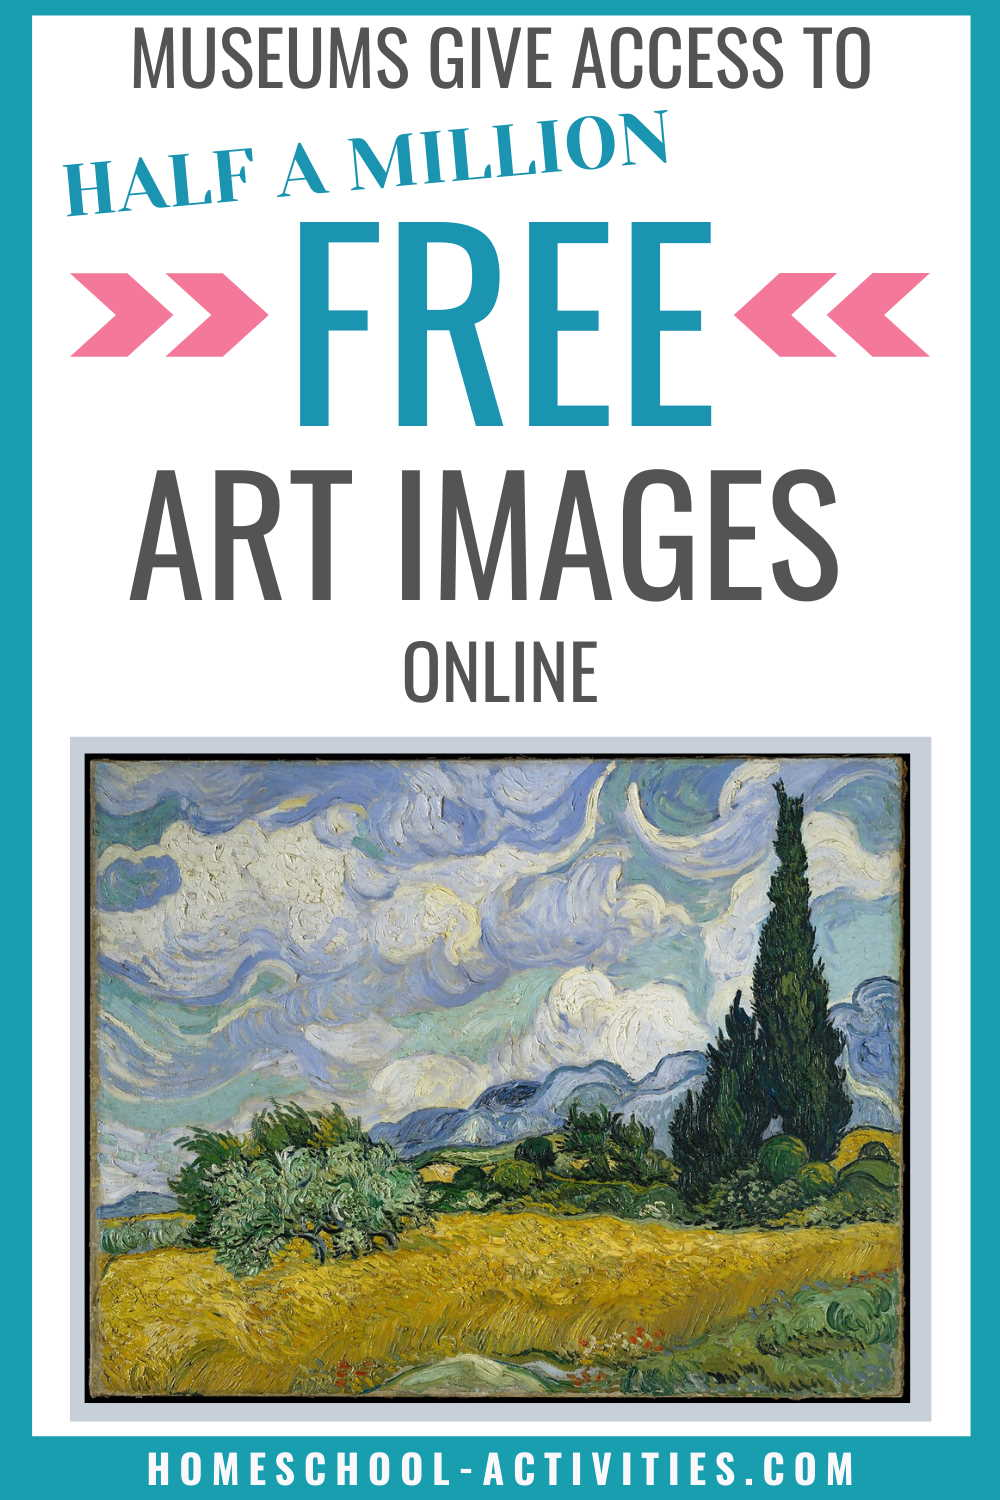 Half a million free famous art images from museums across the world.